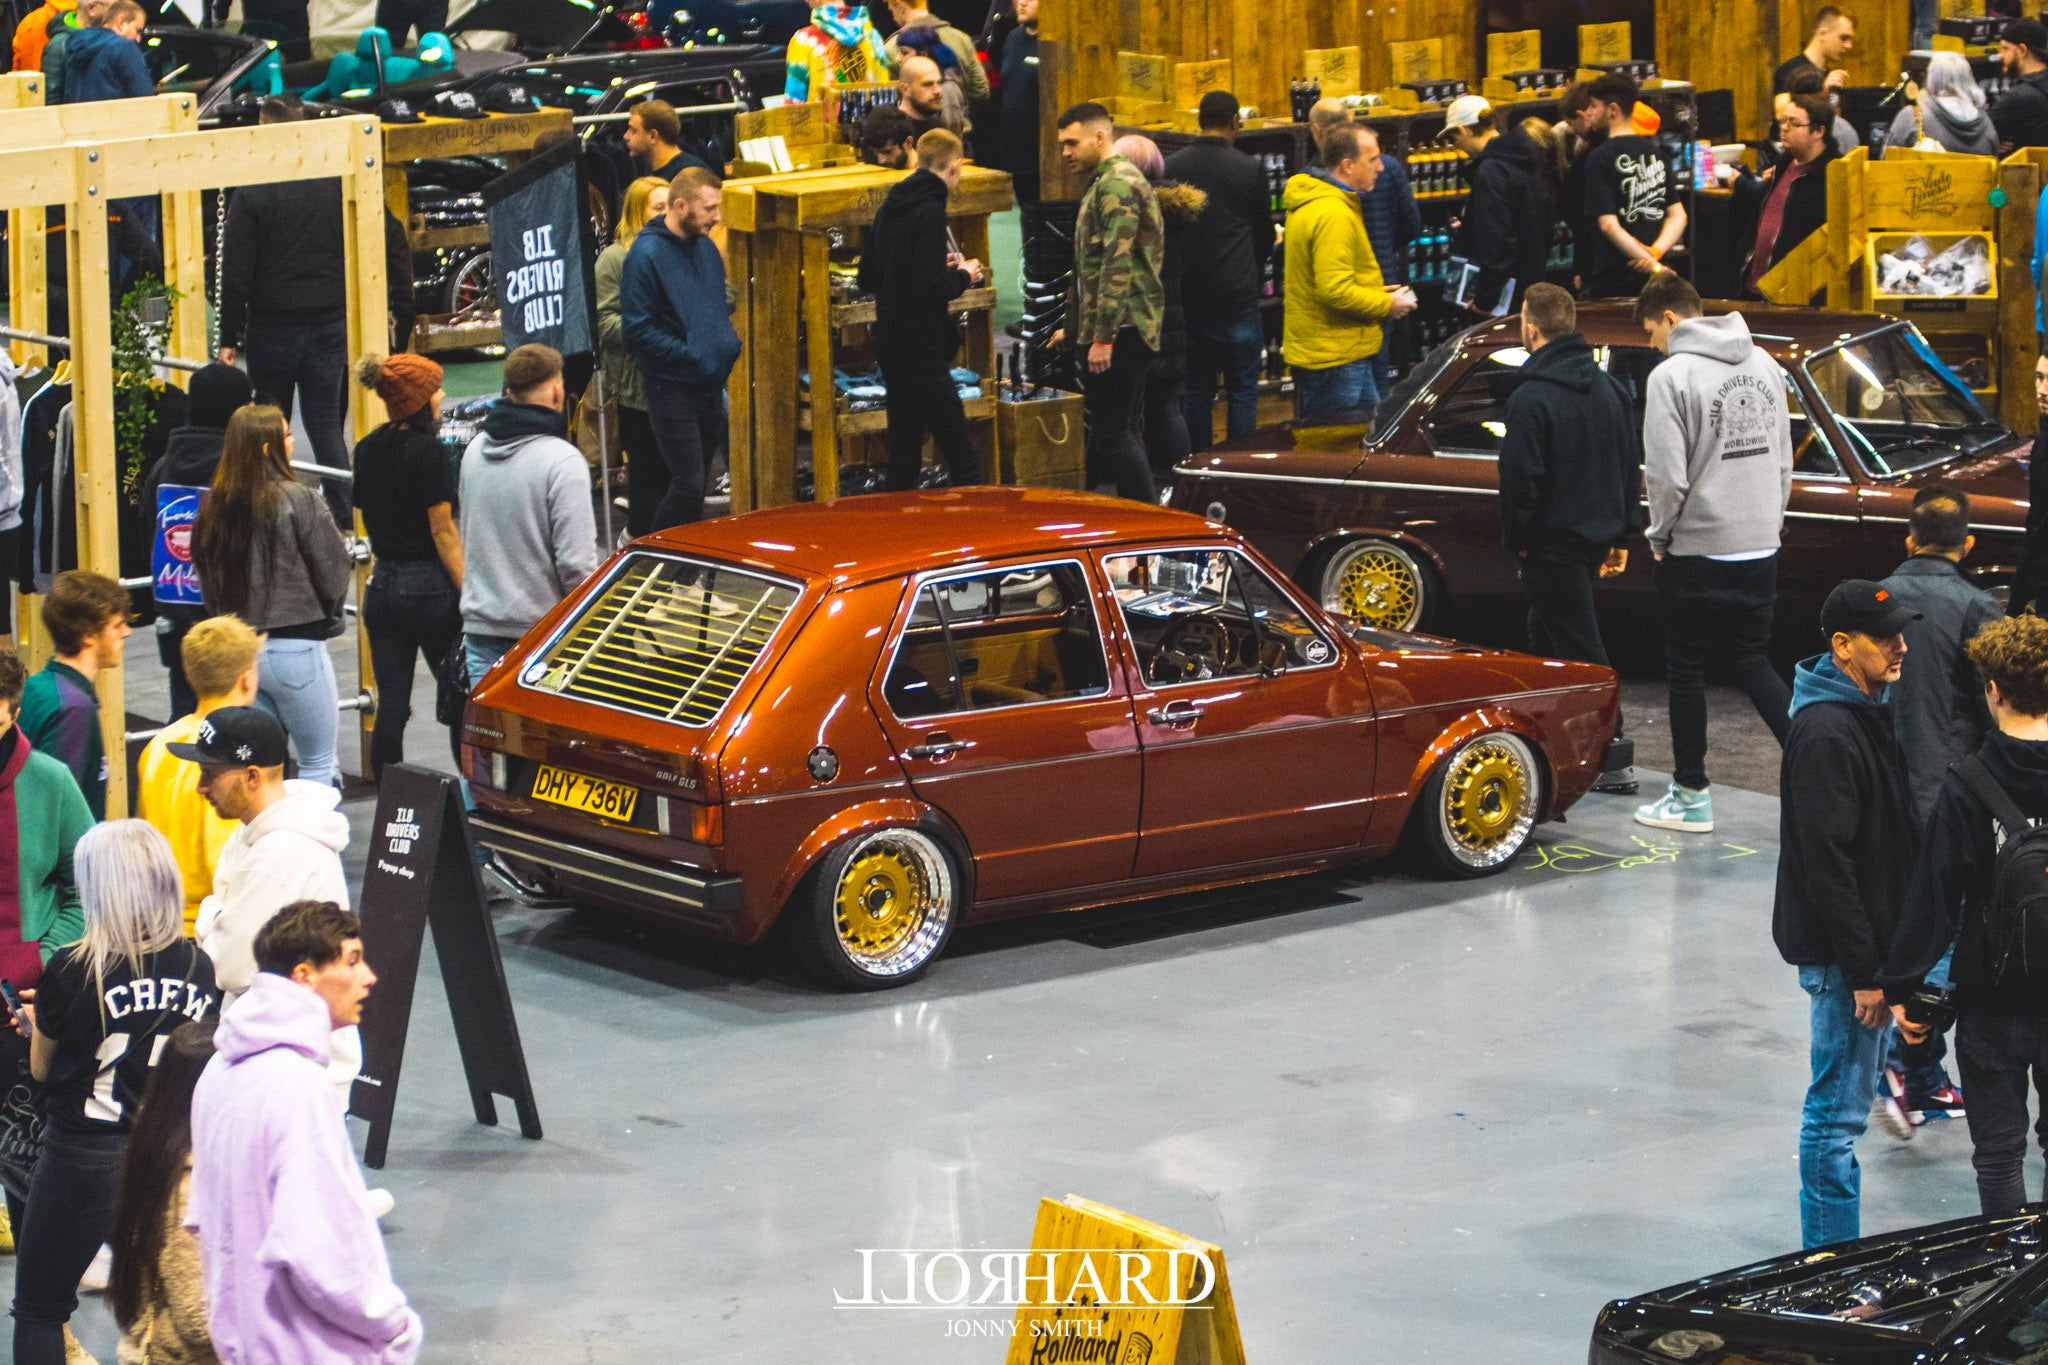 Ultimate Dubs 2019 Show Coverage, RollHard, Slam Sanctuary, Slammed UK, Auto Finesse, Meguiars, Players Show, Syco, Telford International Centre, UD2019, UD19, UDprep, 2019 modified car show, season opener, custom cars, Volkswagens, VWs, Dubs, low cars, low VWs, BBS, rotiform, centrelock wheels, performance volkswagen magazine